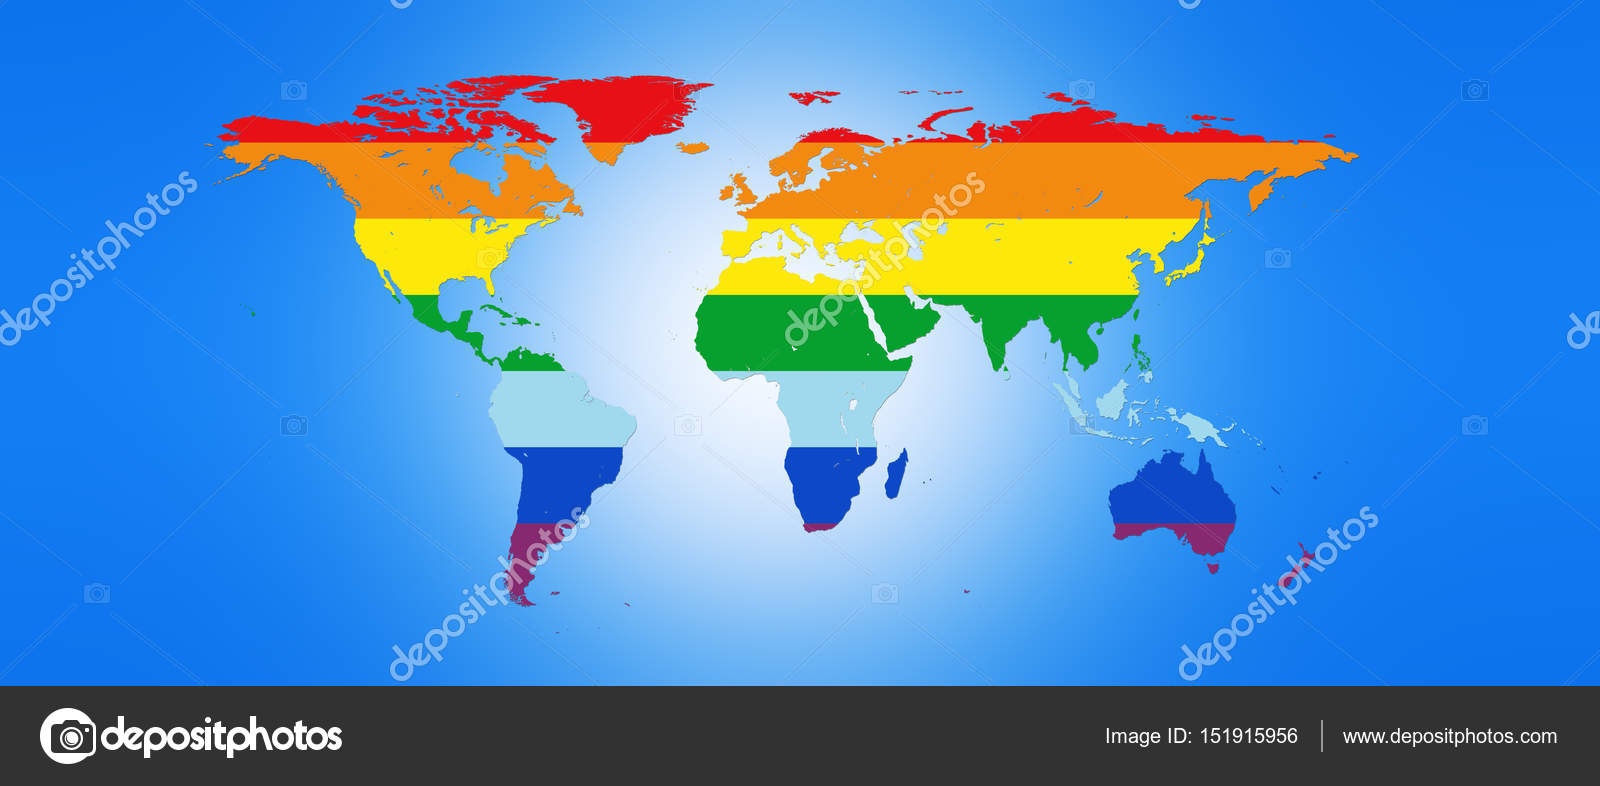 World map in peace colors 3d illustration stock photo world map in peace colors 3d illustration stock photo 151915956 publicscrutiny Image collections